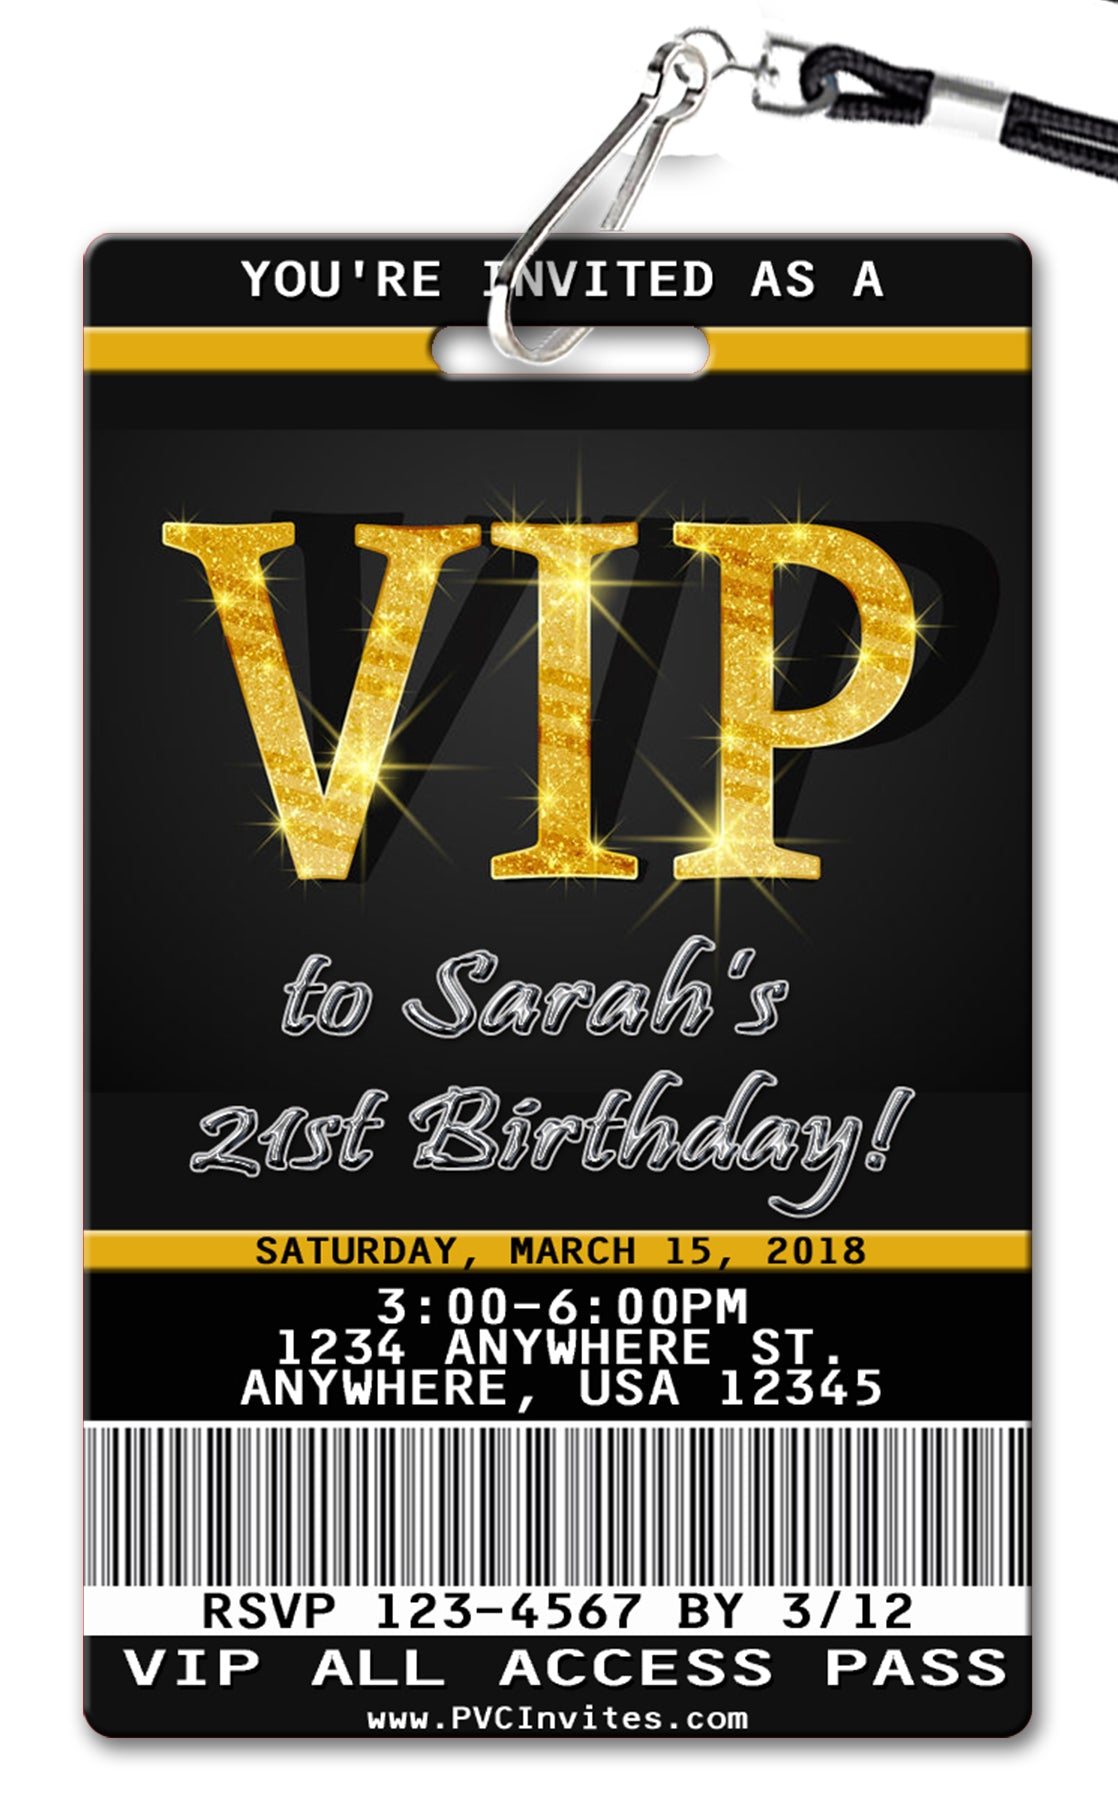 Vip Pass Birthday Invitation Pvc Invites Vip Birthday Invitations